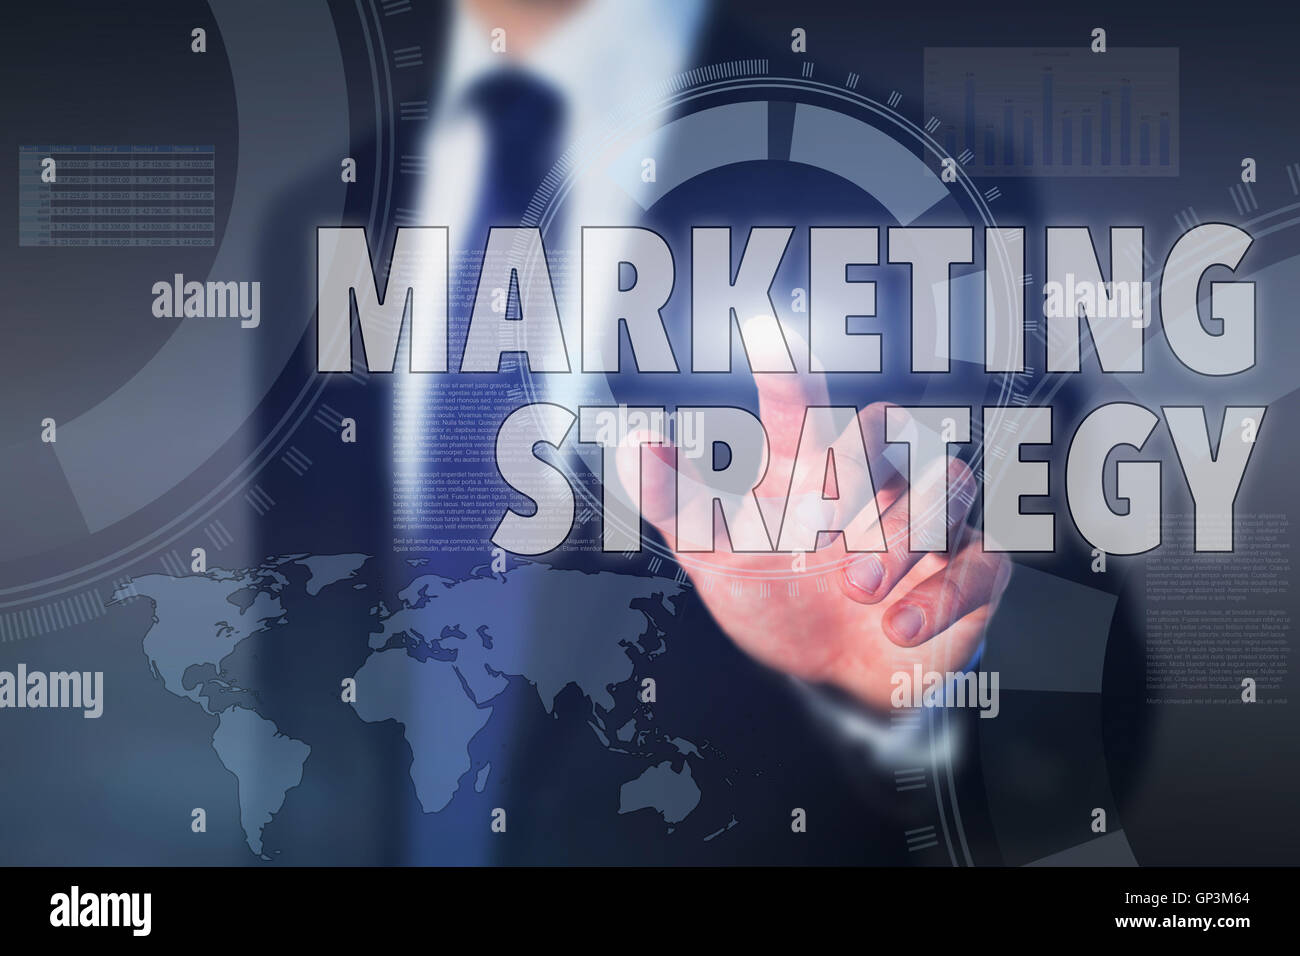 marketing strategy, concept on touch screen - Stock Image